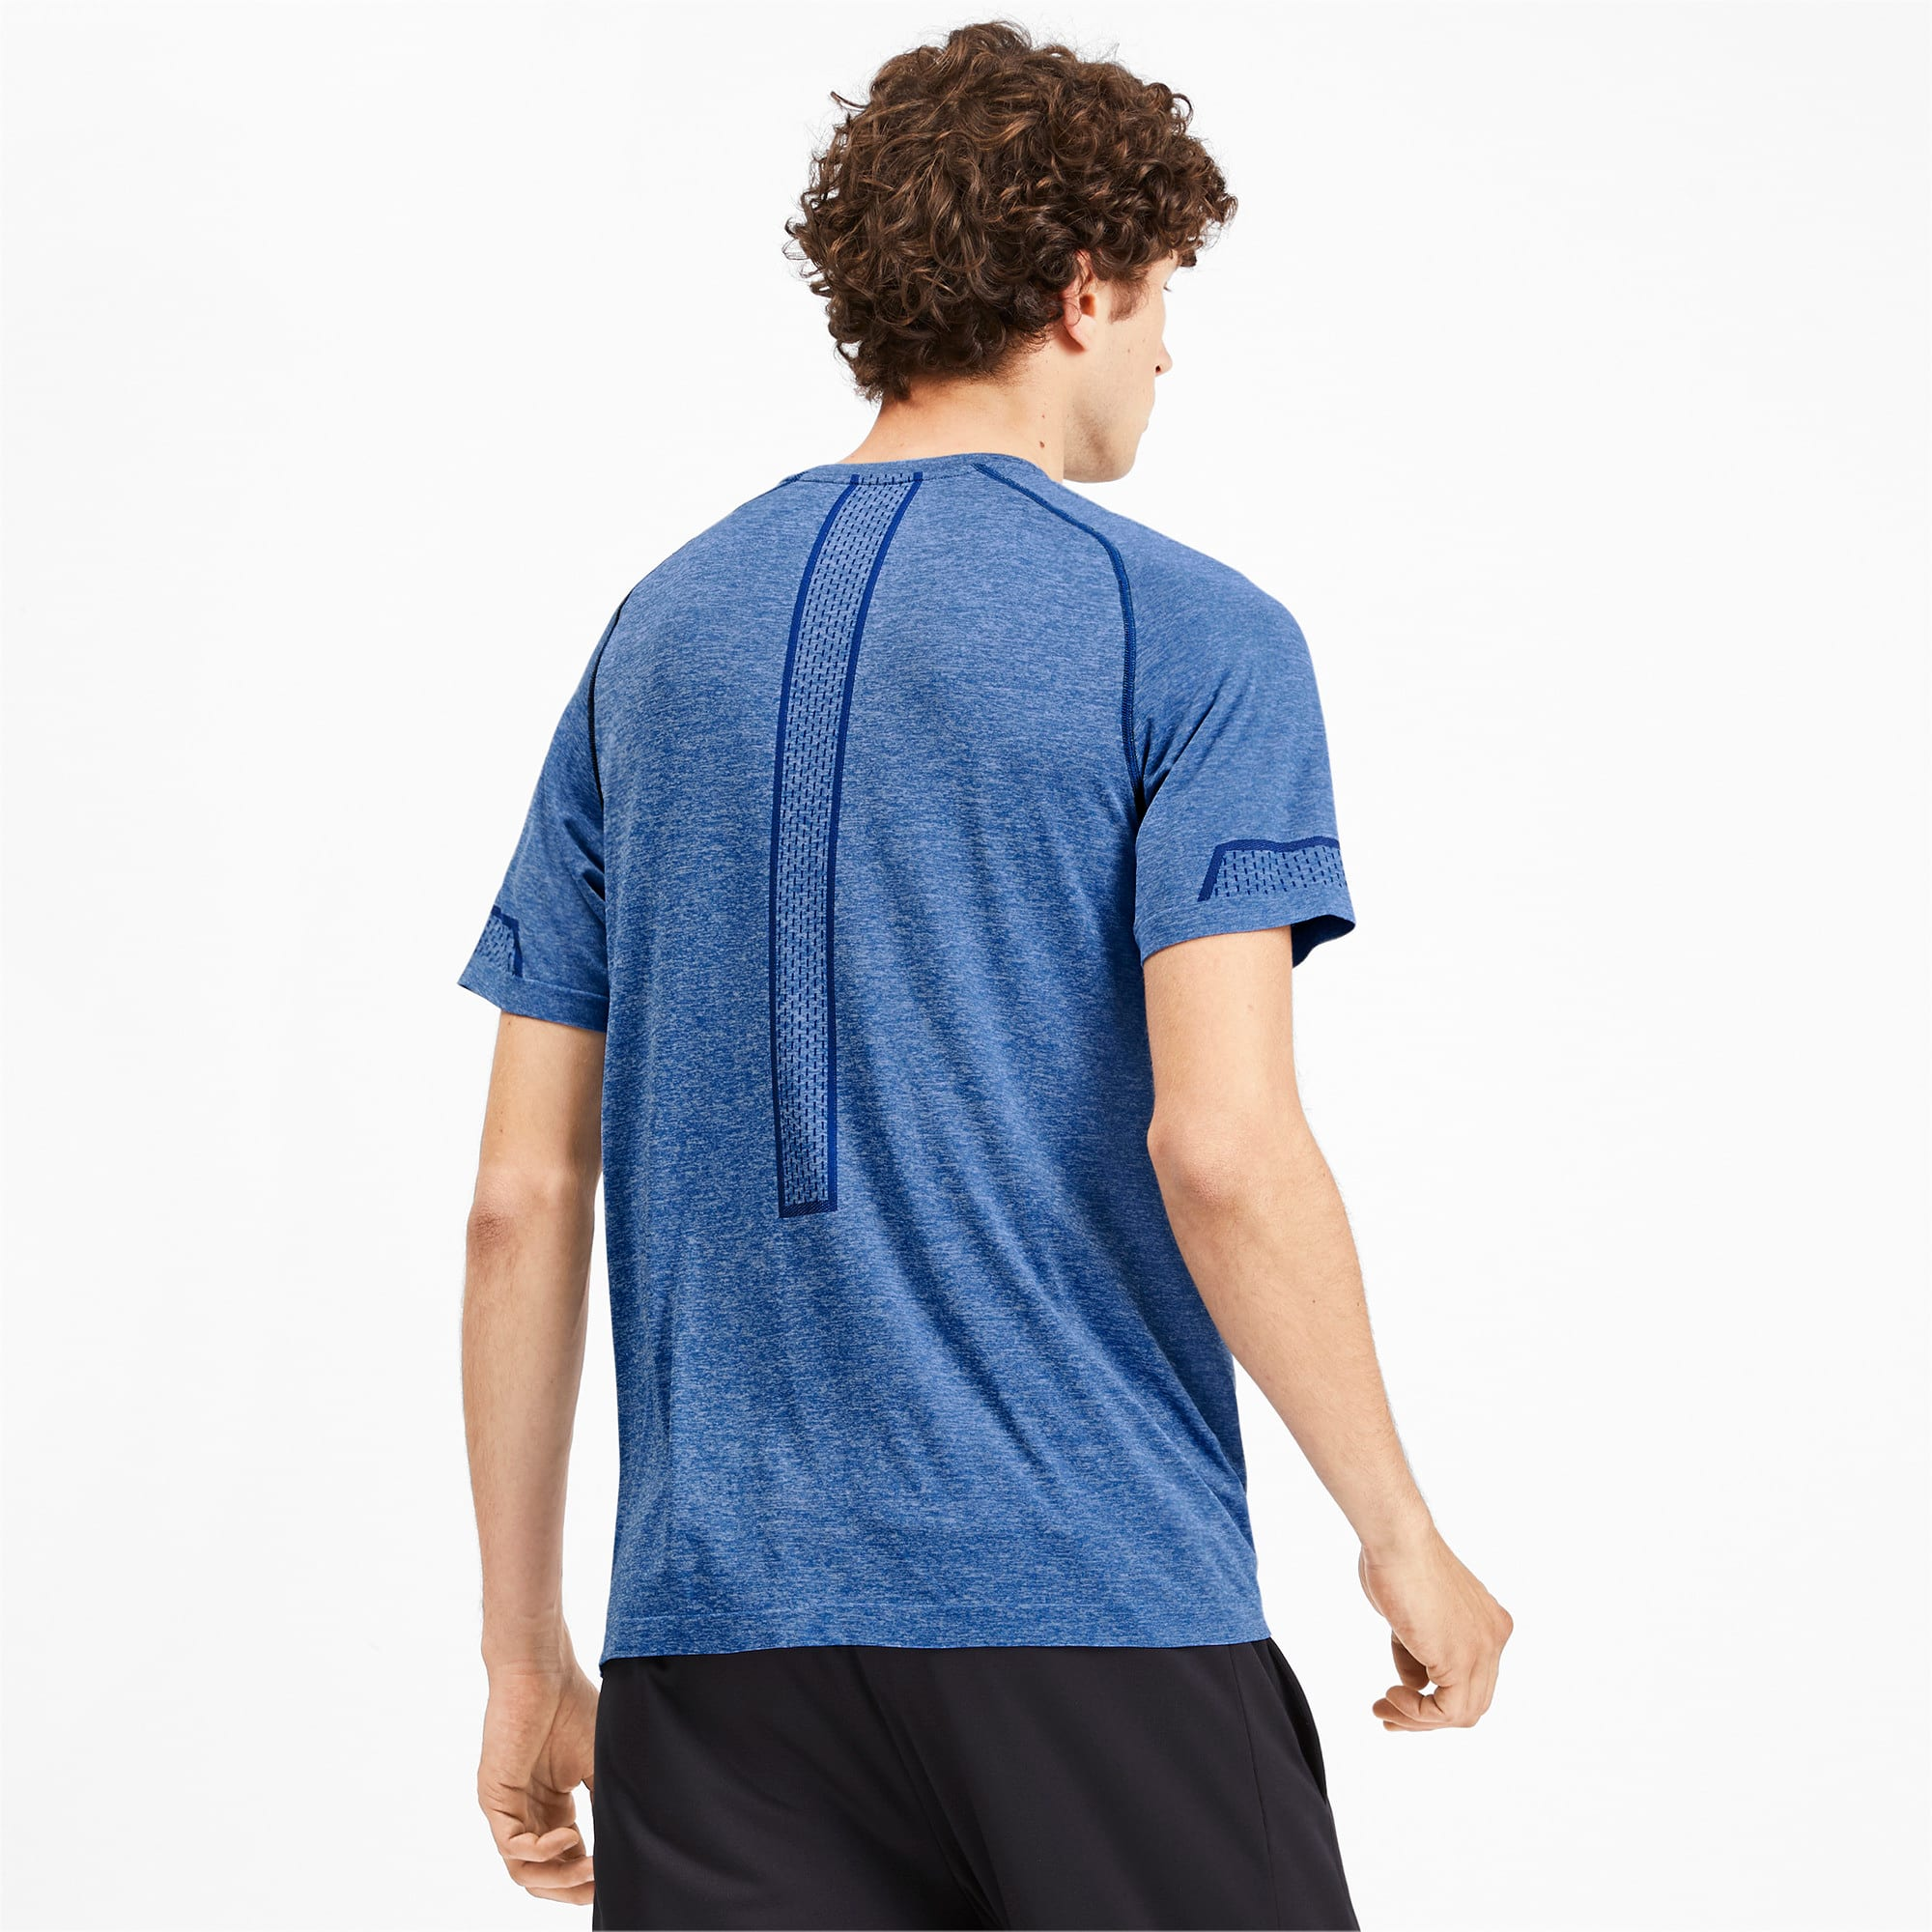 Thumbnail 2 of Energy Seamless Men's Training Tee, Galaxy Blue Heather, medium